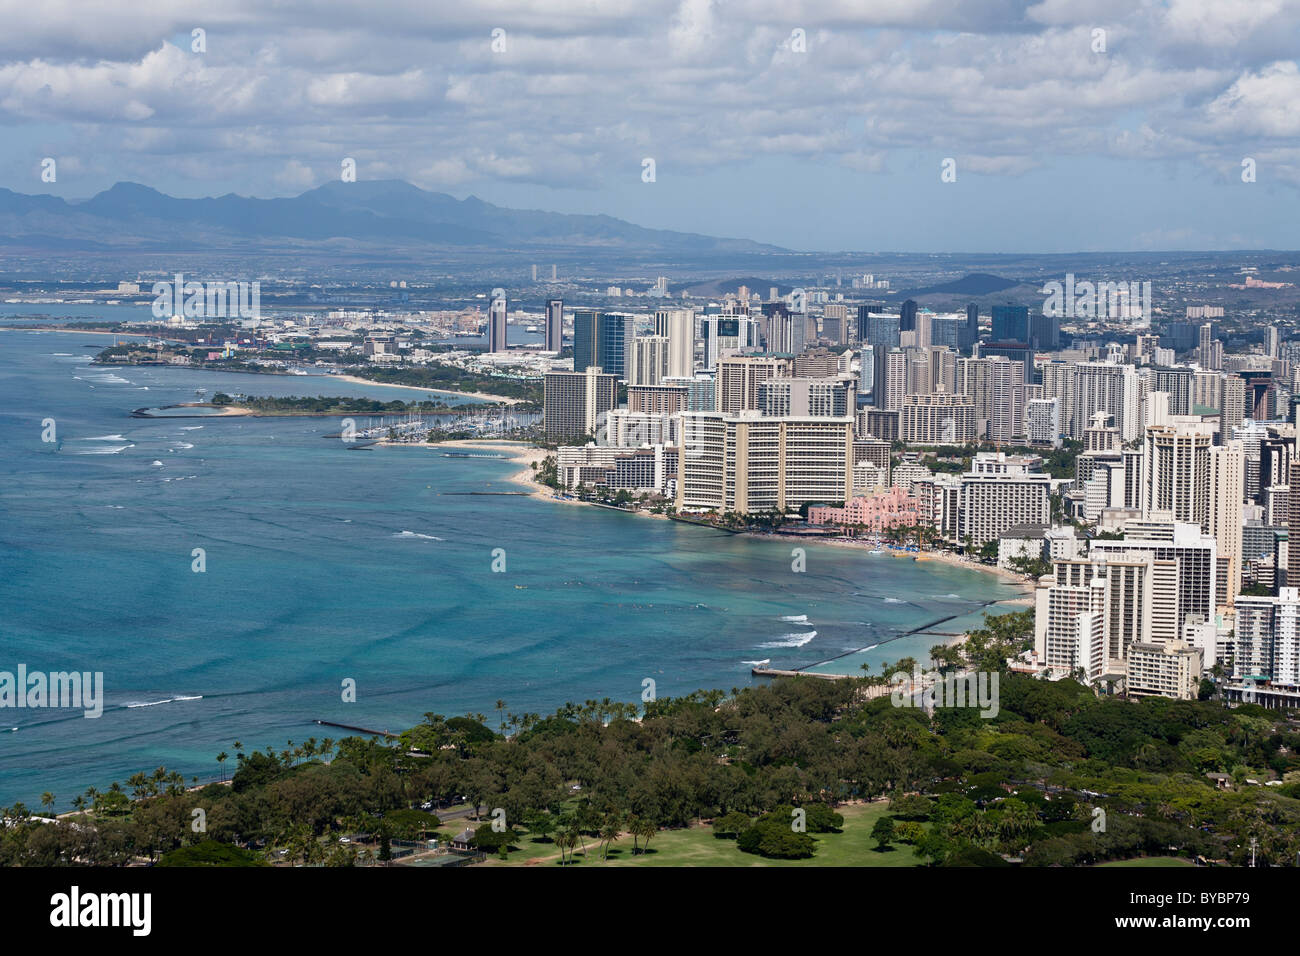 Honolulu and Waikiki Beach. Cityscape of Honolulu with Waikiki and its famous beach in the foreground Stock Photo